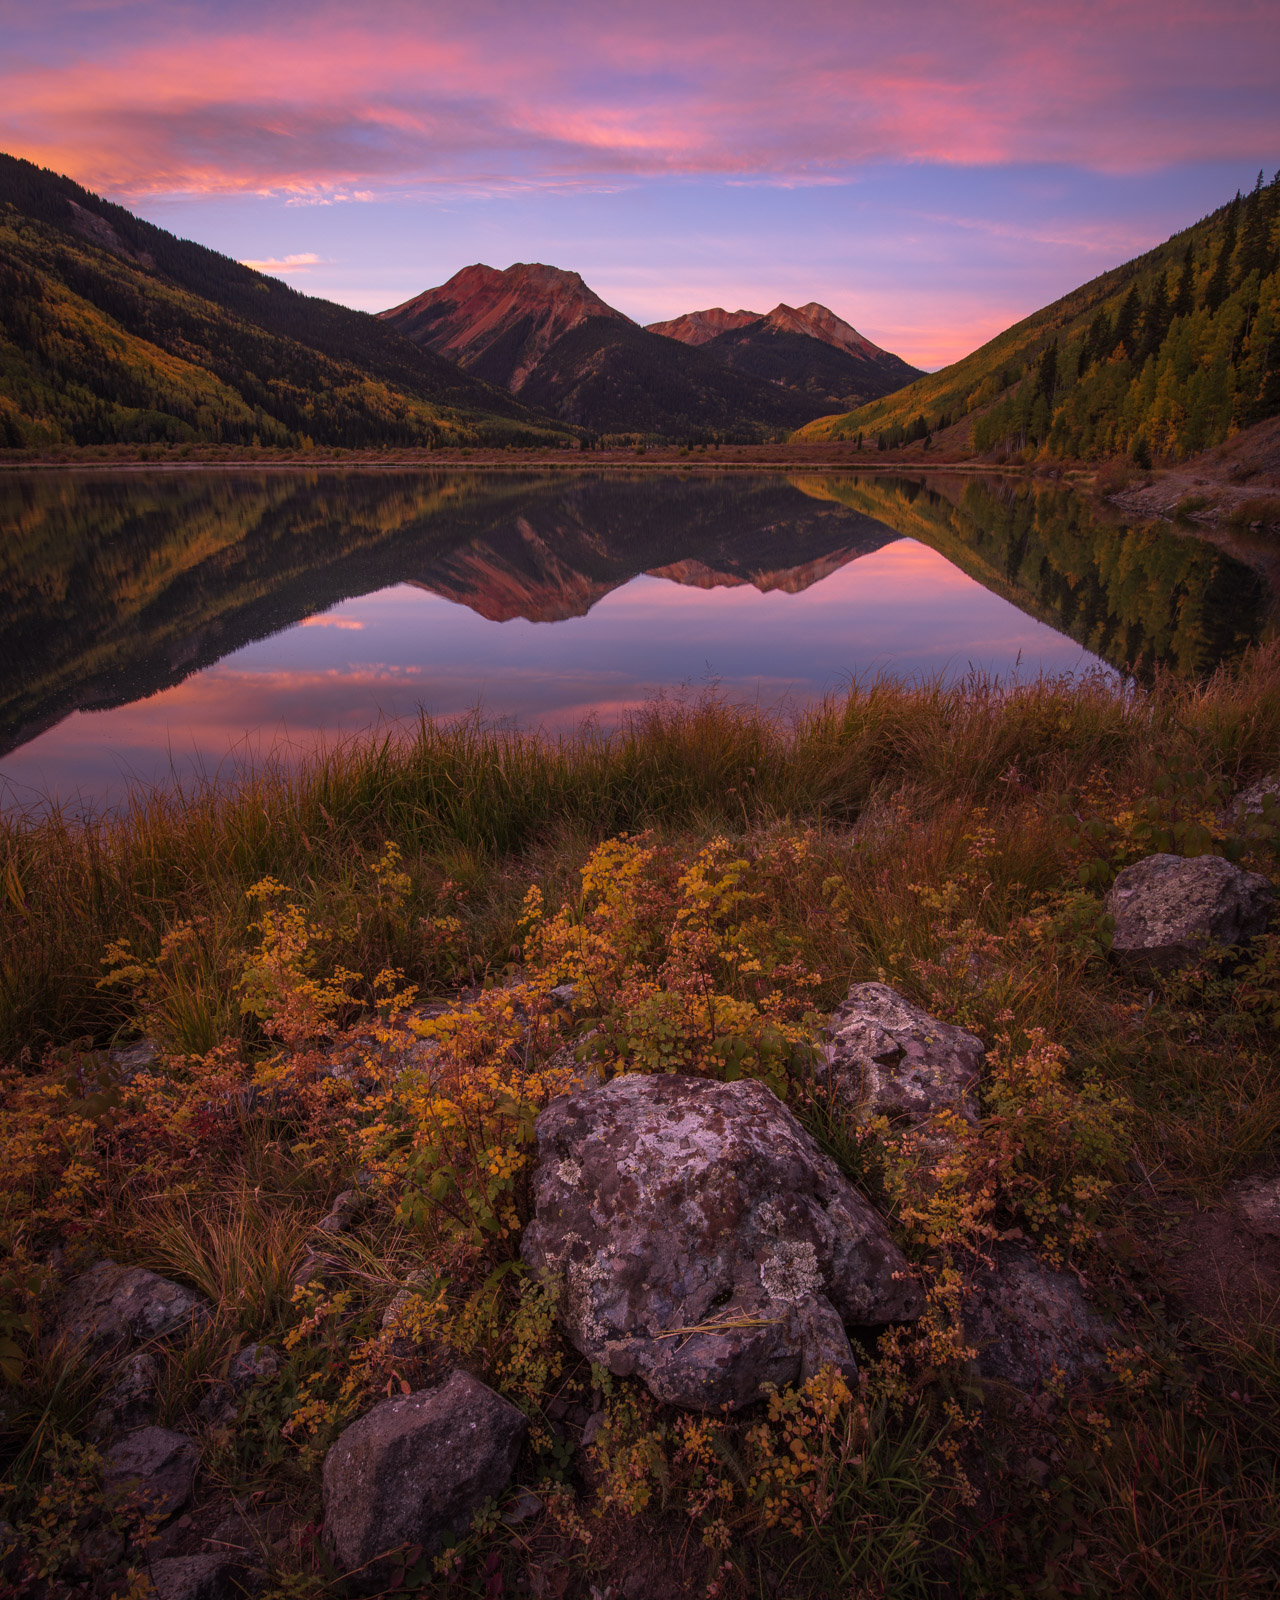 Red Mountain reflects in Crystal Lake at sunrise, San Juan Mountains, Colorado. Add beauty to your space with a Joseph Rossbach...